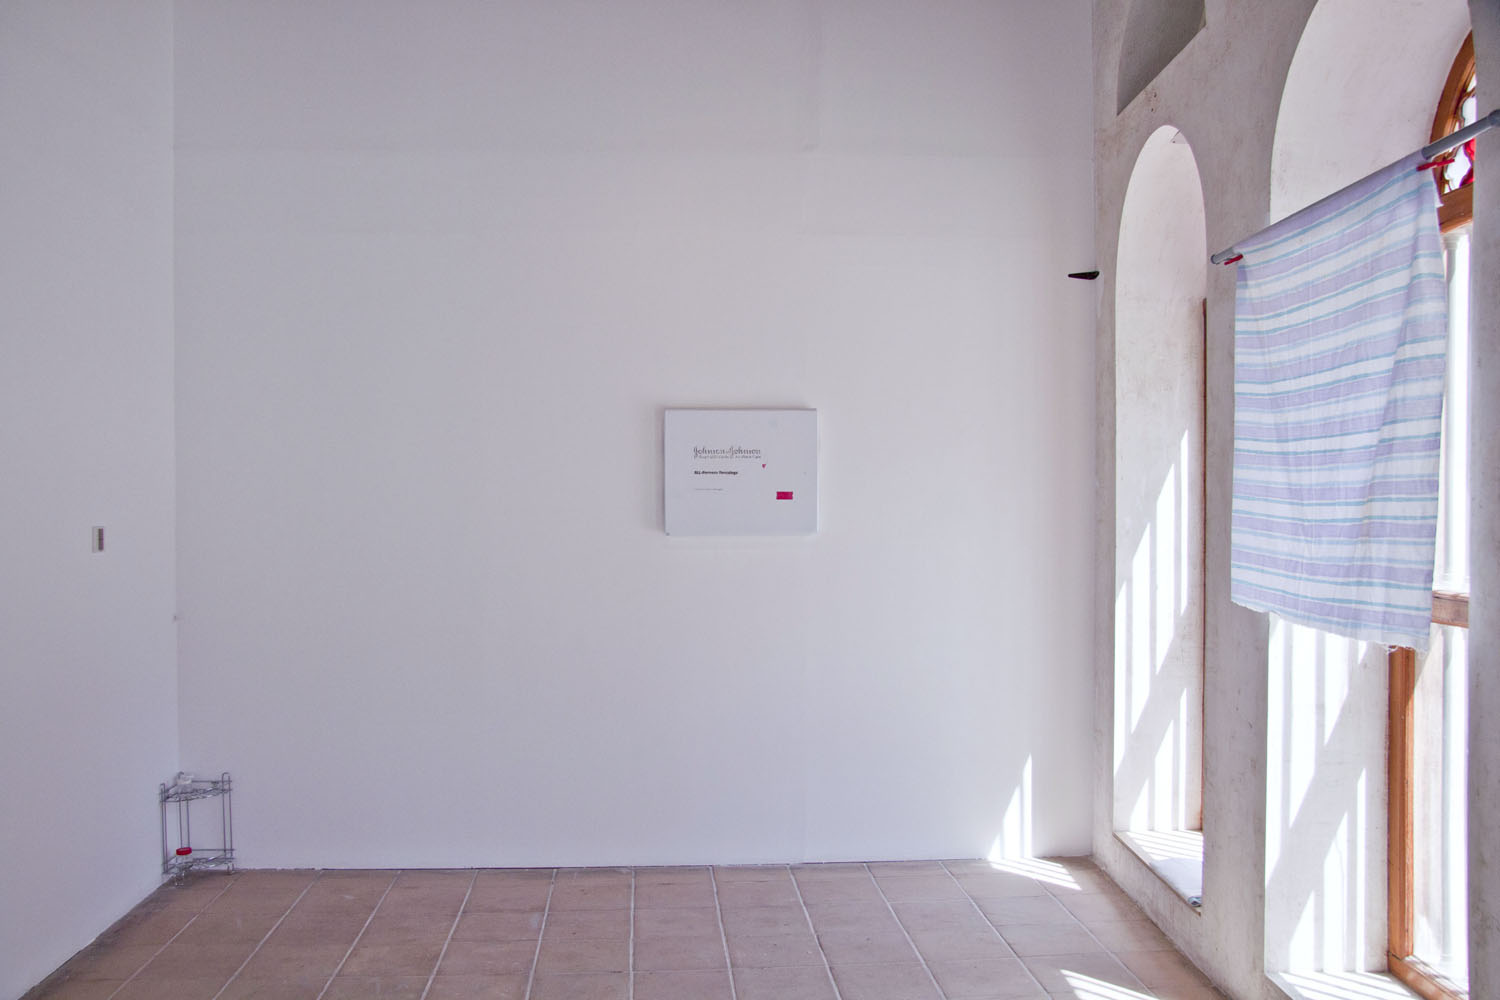 Lee Kit   What should I do to live in your life? , 2012 Installation view at Sharjah Art Foundation, Bait Al Serkal, Arts Area Sharjah, United Arab Emirates